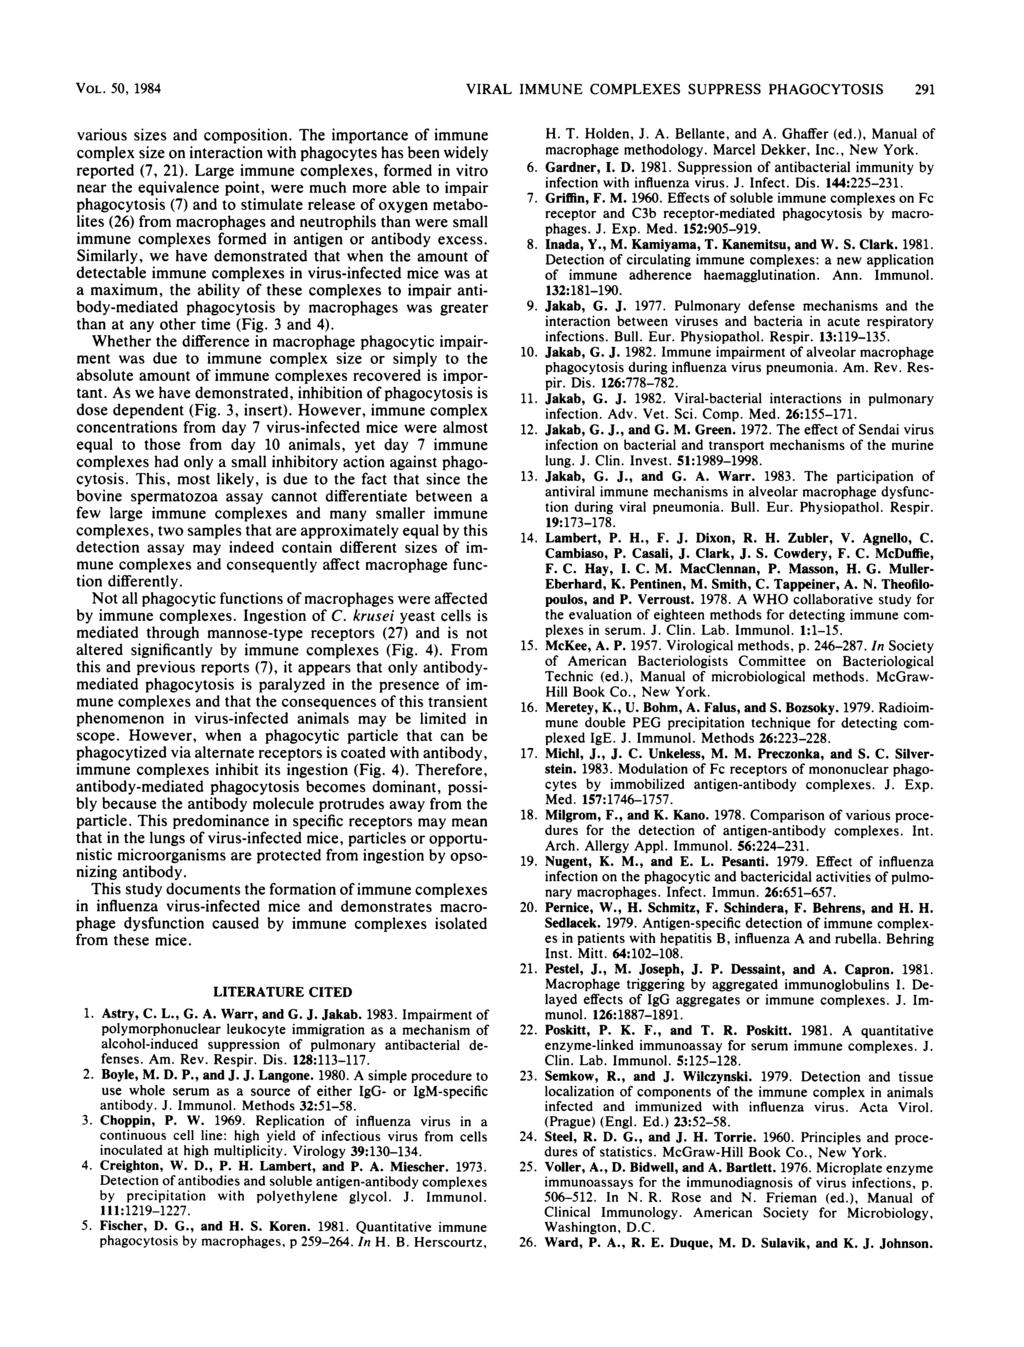 VOL. 5, 1984 VIRAL IMMUNE COMPLEXES SUPPRESS PHAGOCYTOSIS 291 various sies and composition. The importance of immune complex sie on interaction ith phagocytes has been idely reported (7, 21).